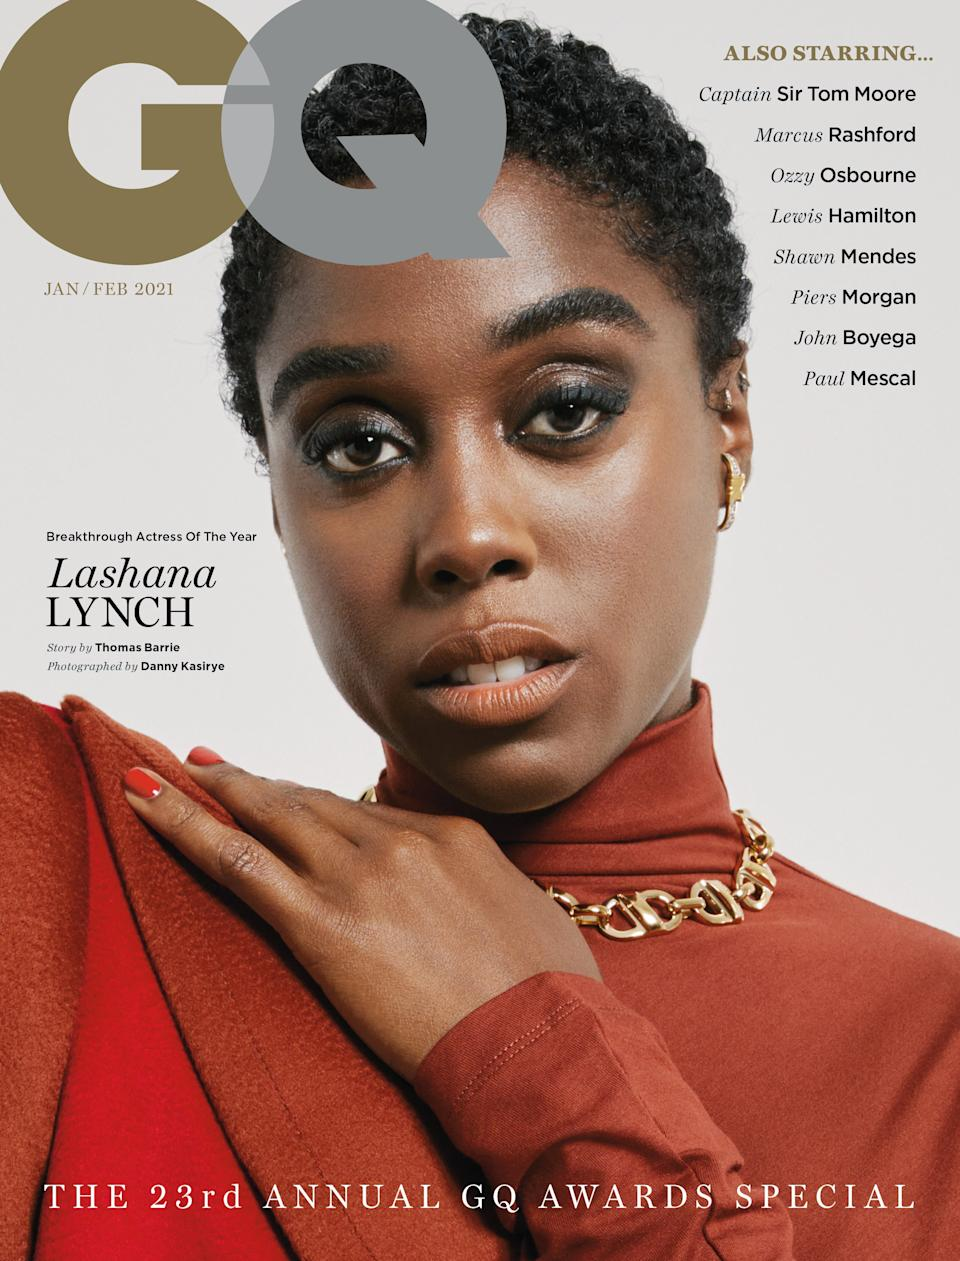 <p>Lynch in GQ</p>Danny Kasiyre/GQ Magazine